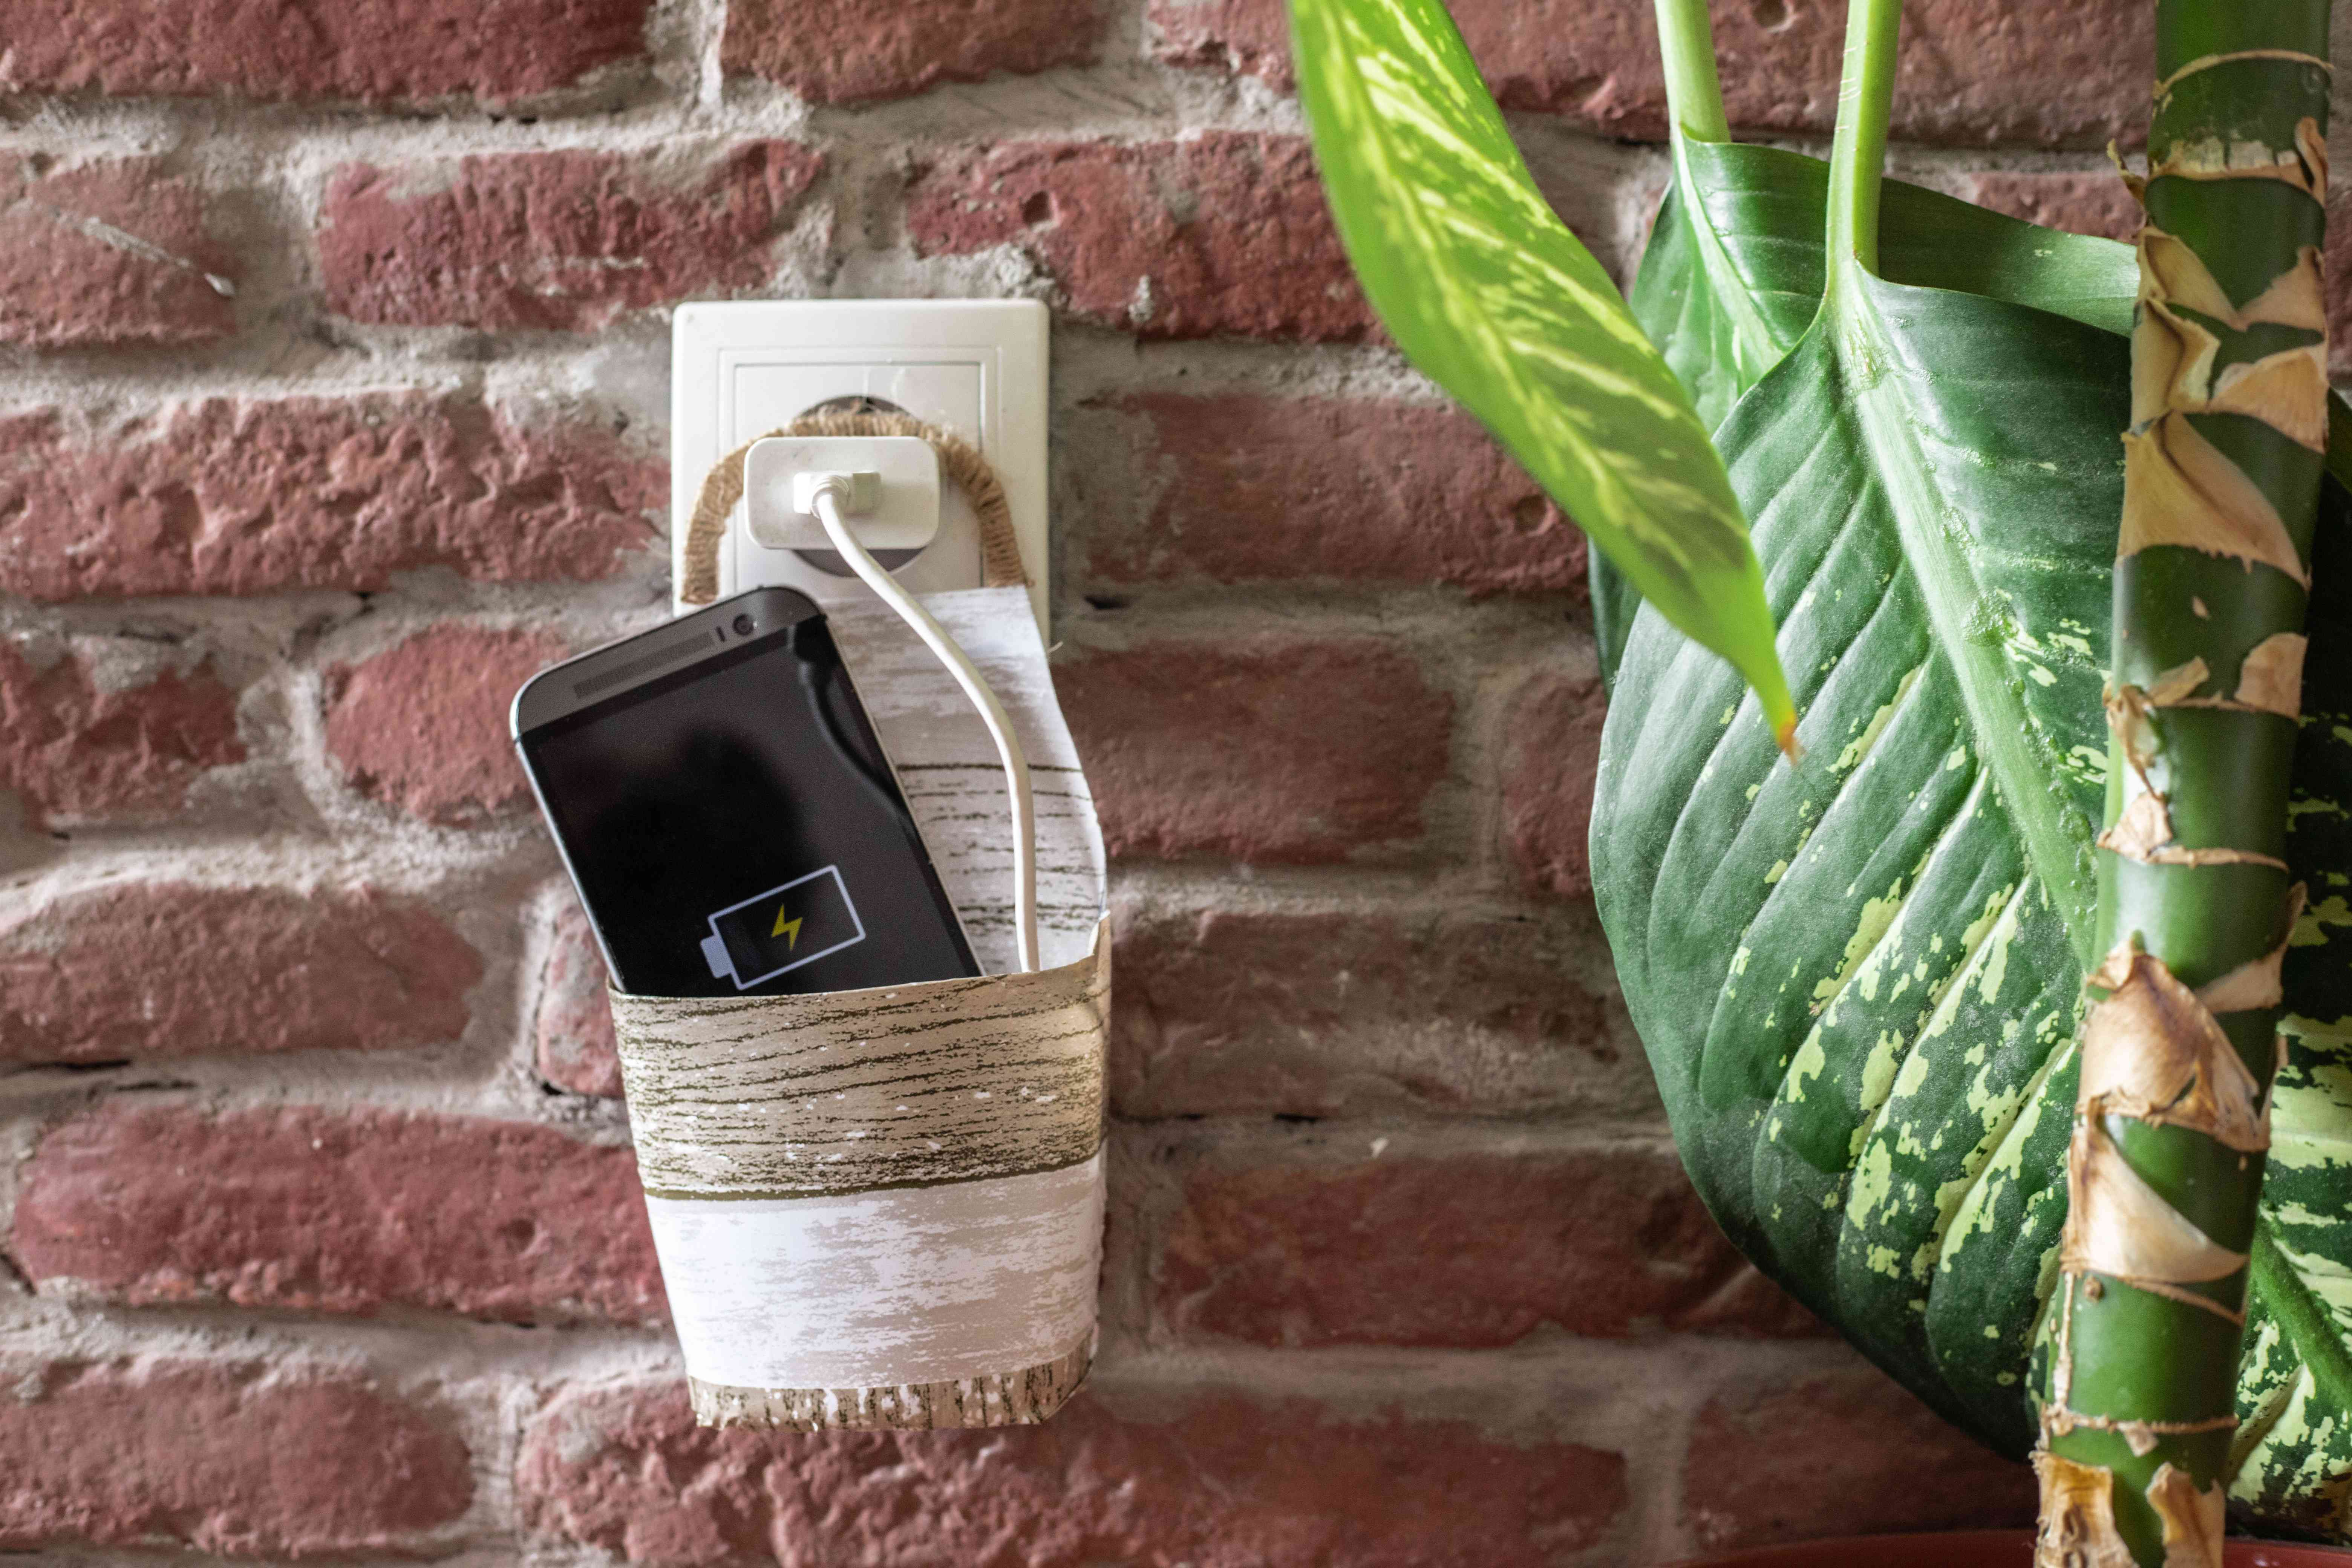 recycled plastic bottle upcycled into cell phone holder for charger